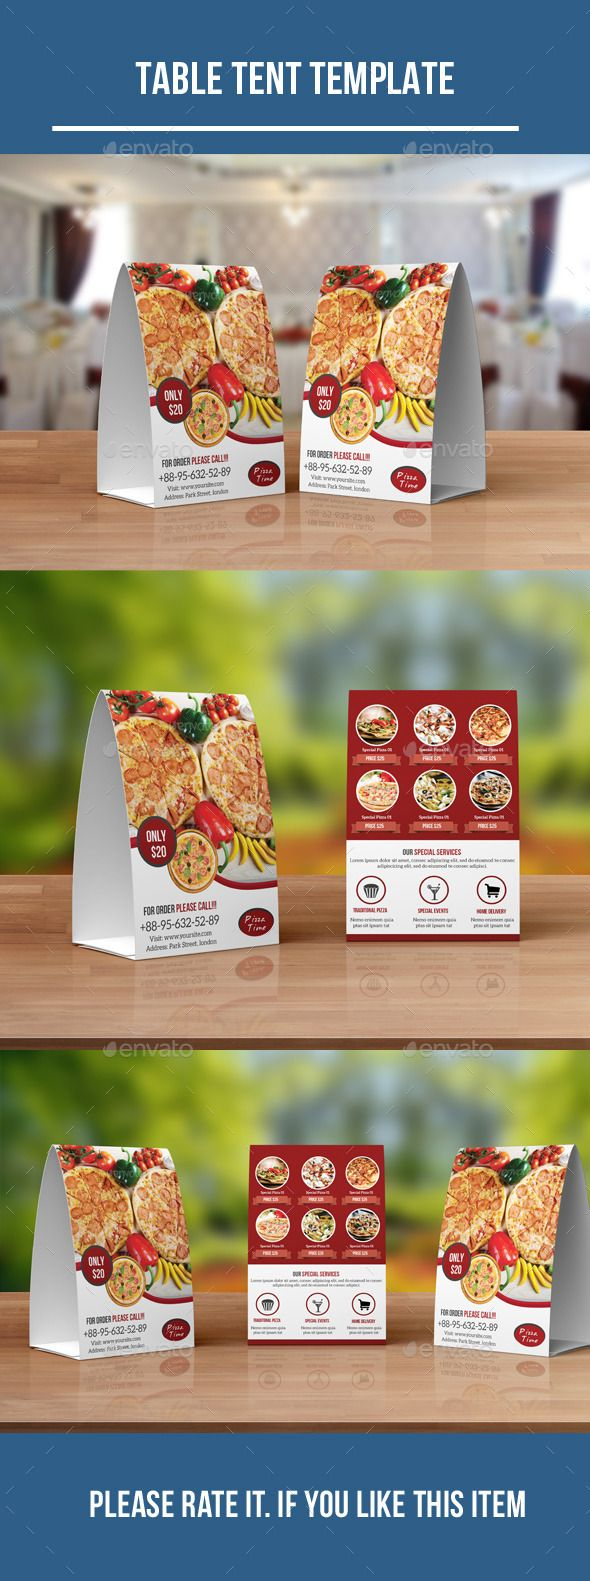 Food Menu Table Tent Template #design Download: http://graphicriver.net/item/food-menu-table-tent/12421847?ref=ksioks